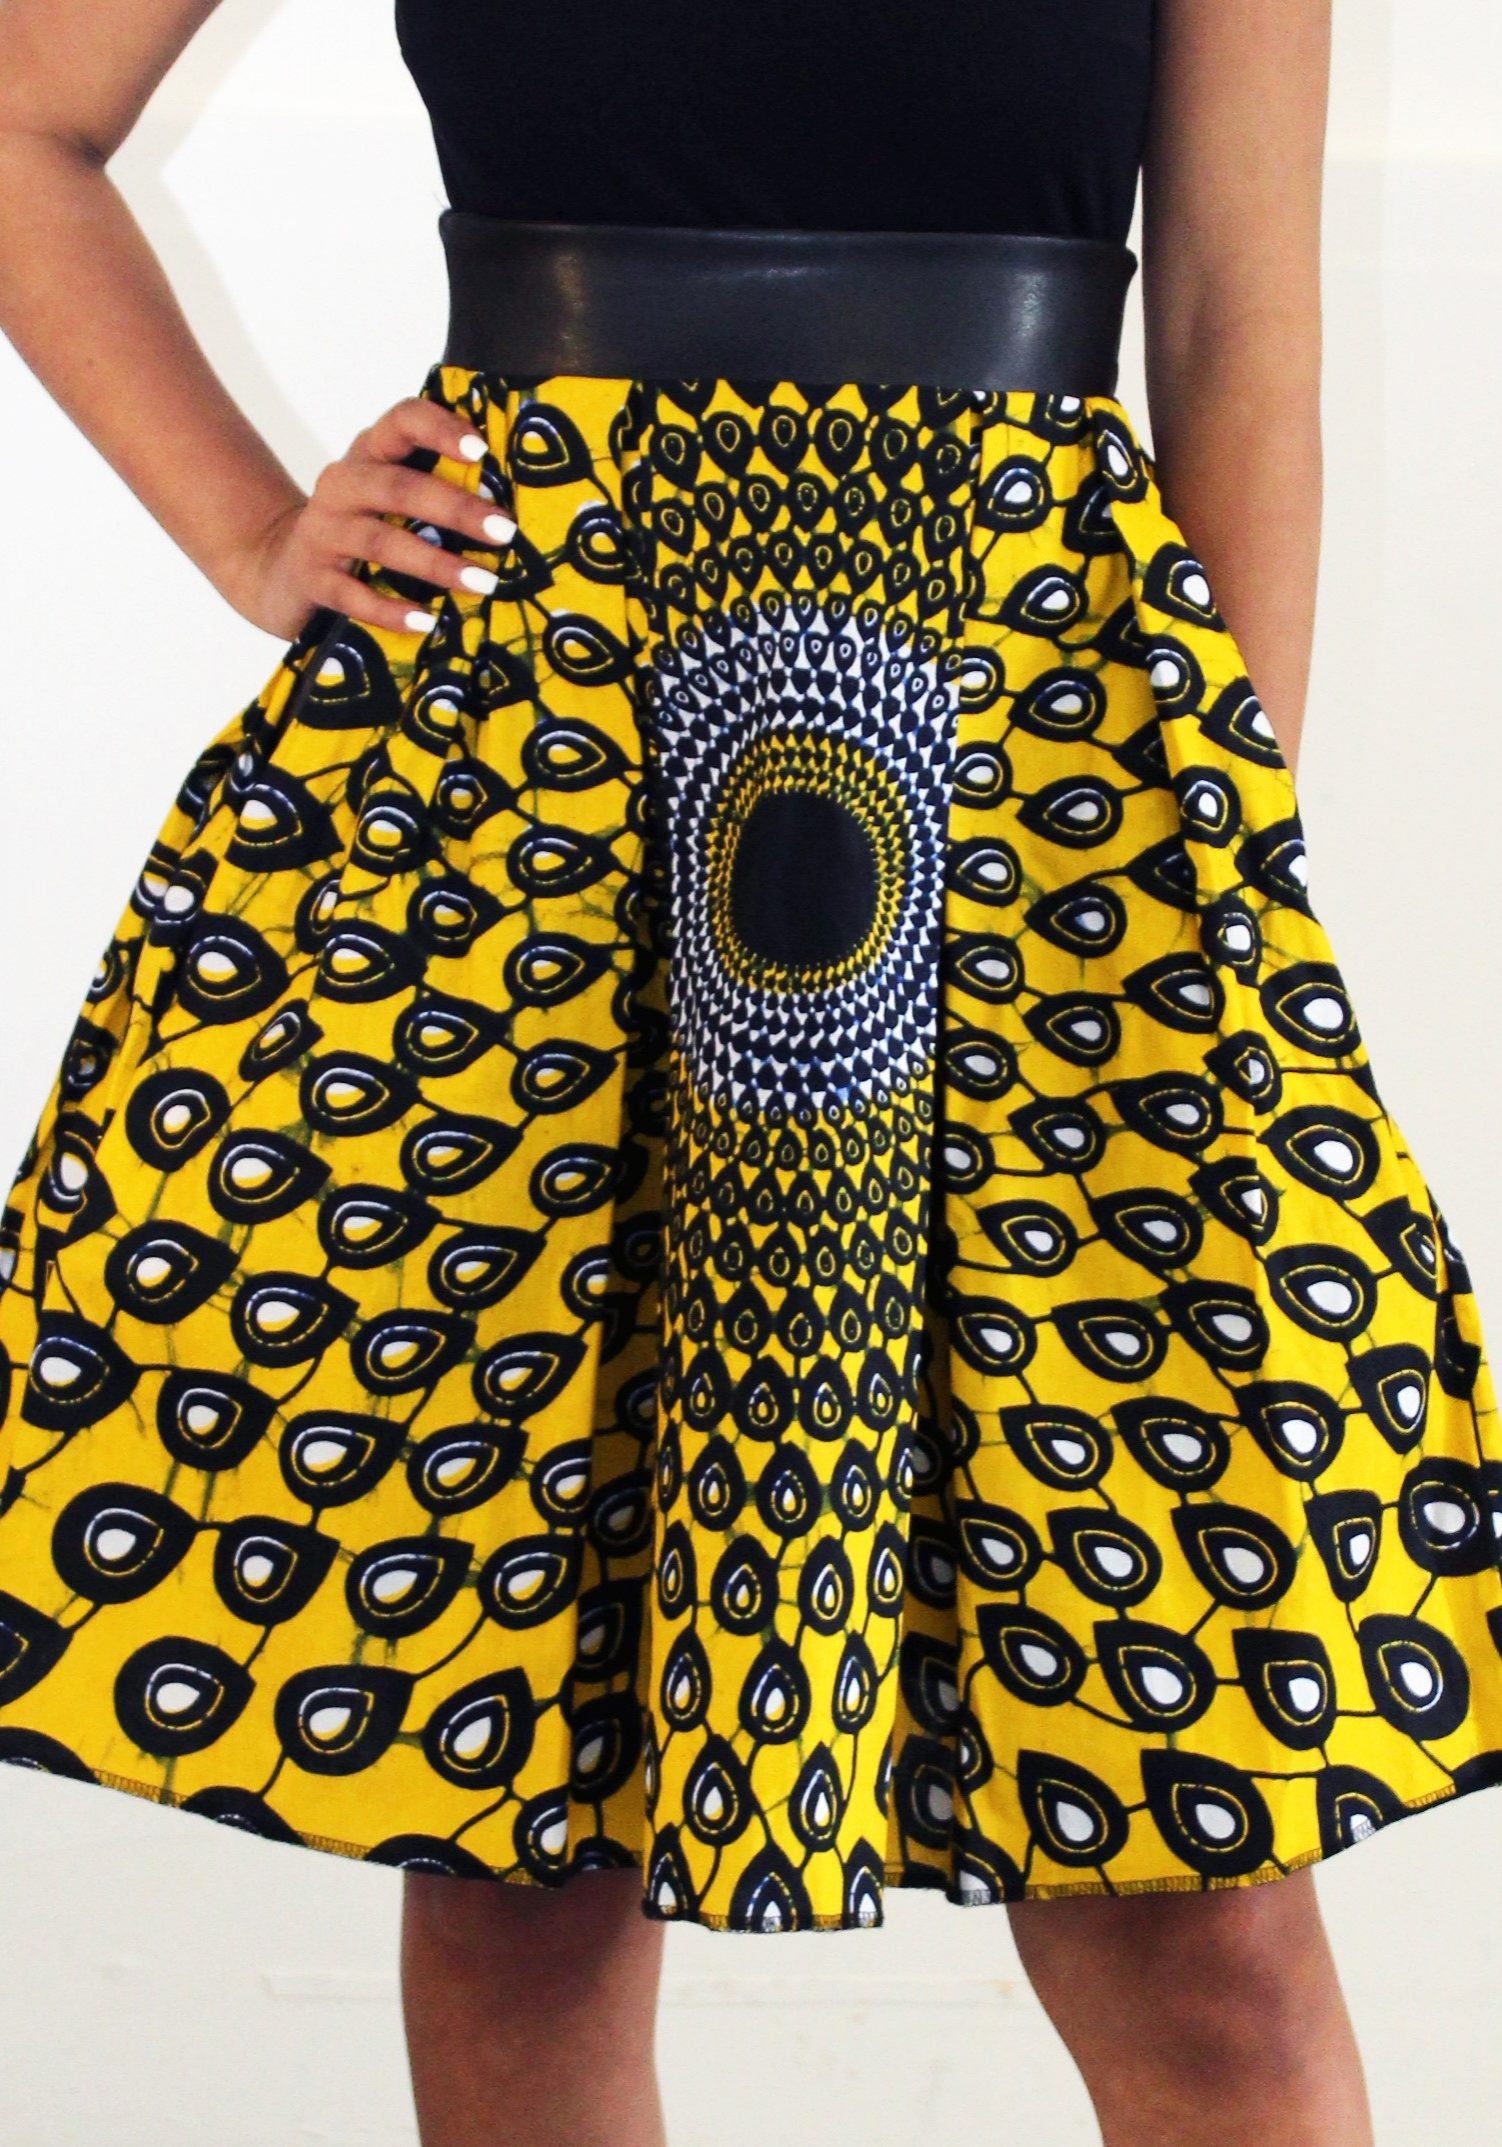 Afrikan Print Yellow Whats Your Skirt